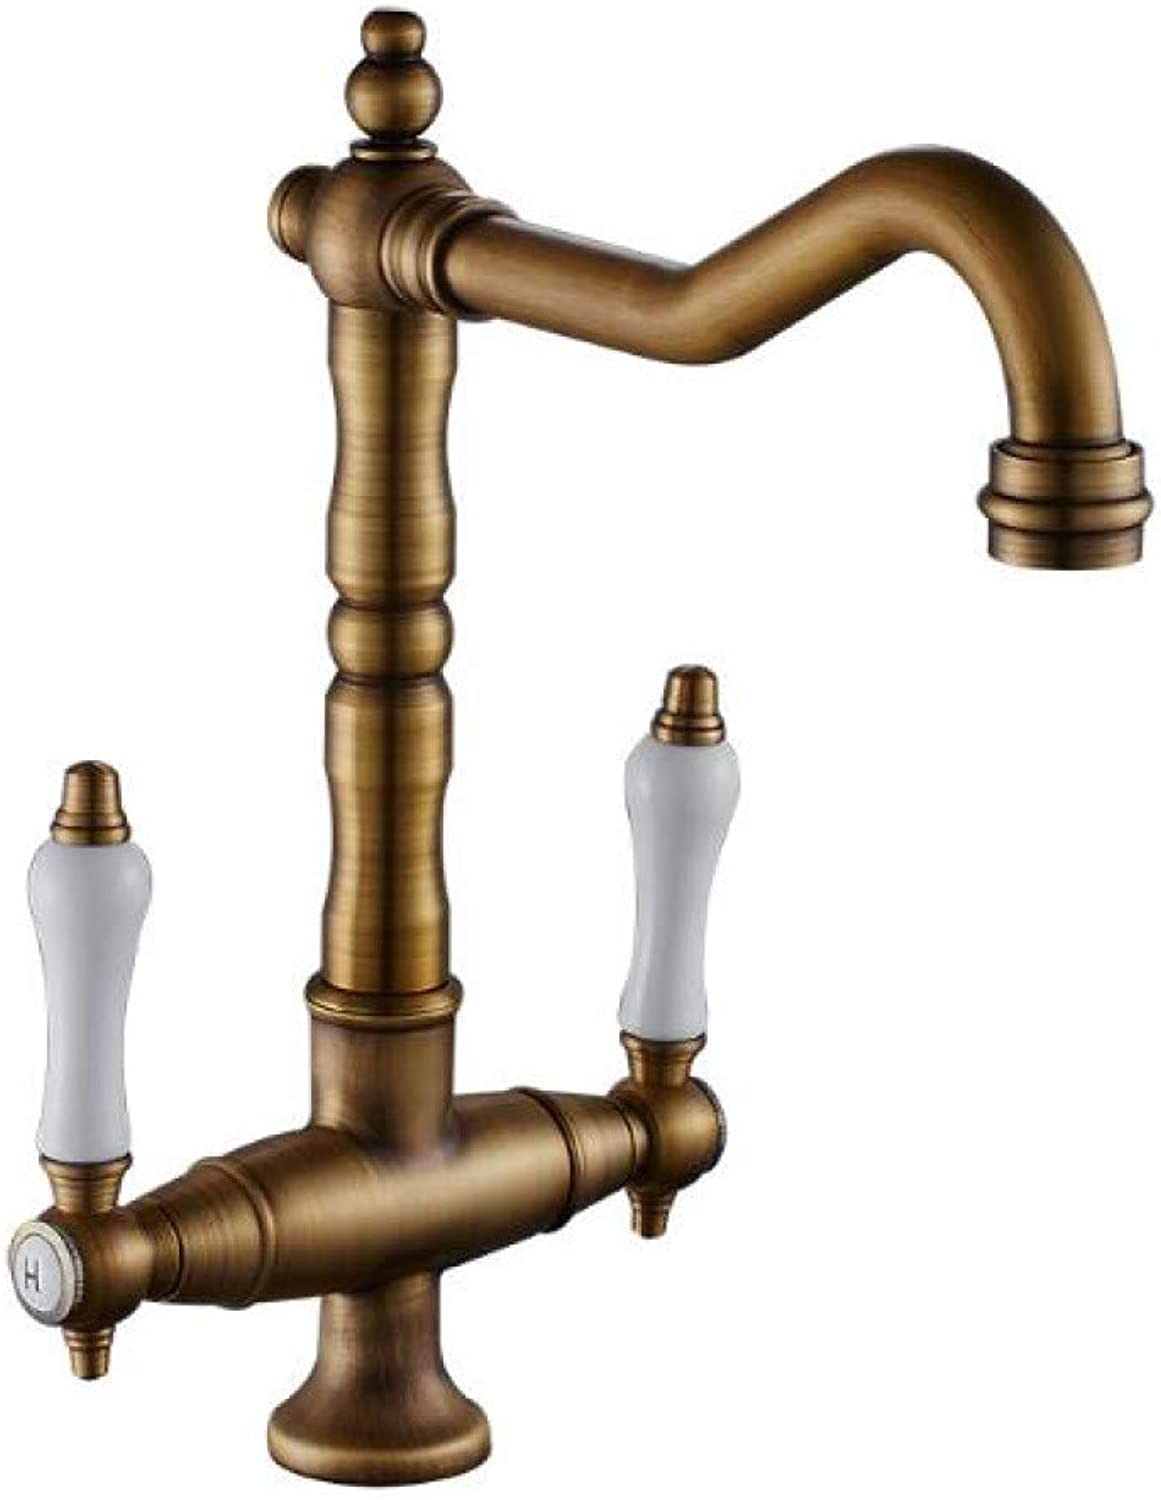 YHSGY Kitchen Taps 360 Degree Swivel Solid Brass Antique Bathroom Mixer Cold and Hot Kitchen Tap Single Hole Water Tap Kitchen Faucet